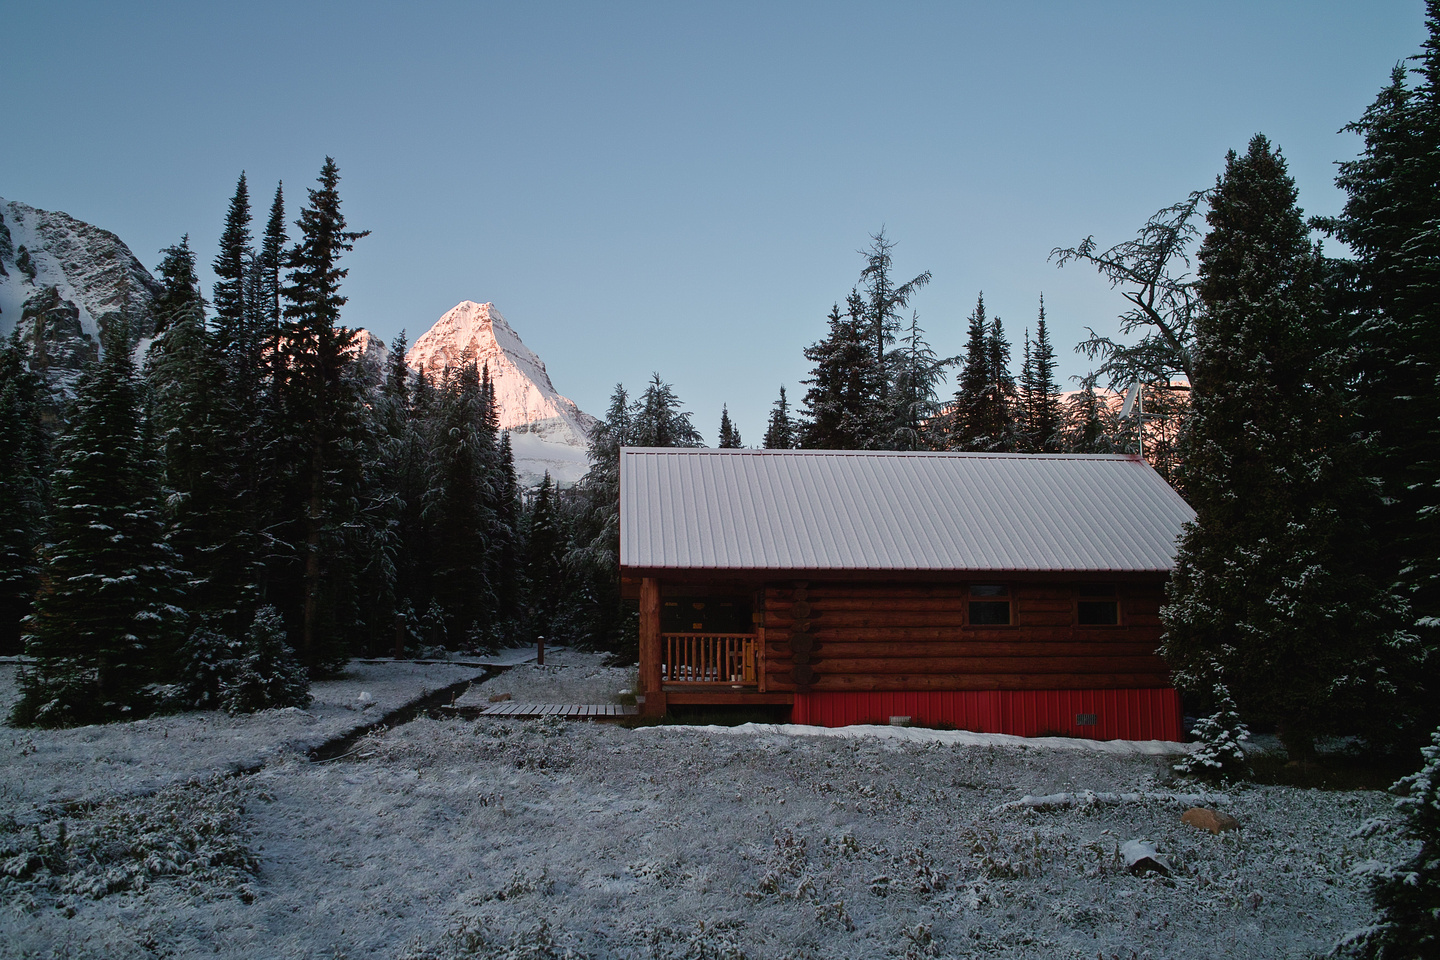 The cook shelter from our front porch and Mount Assiniboine.